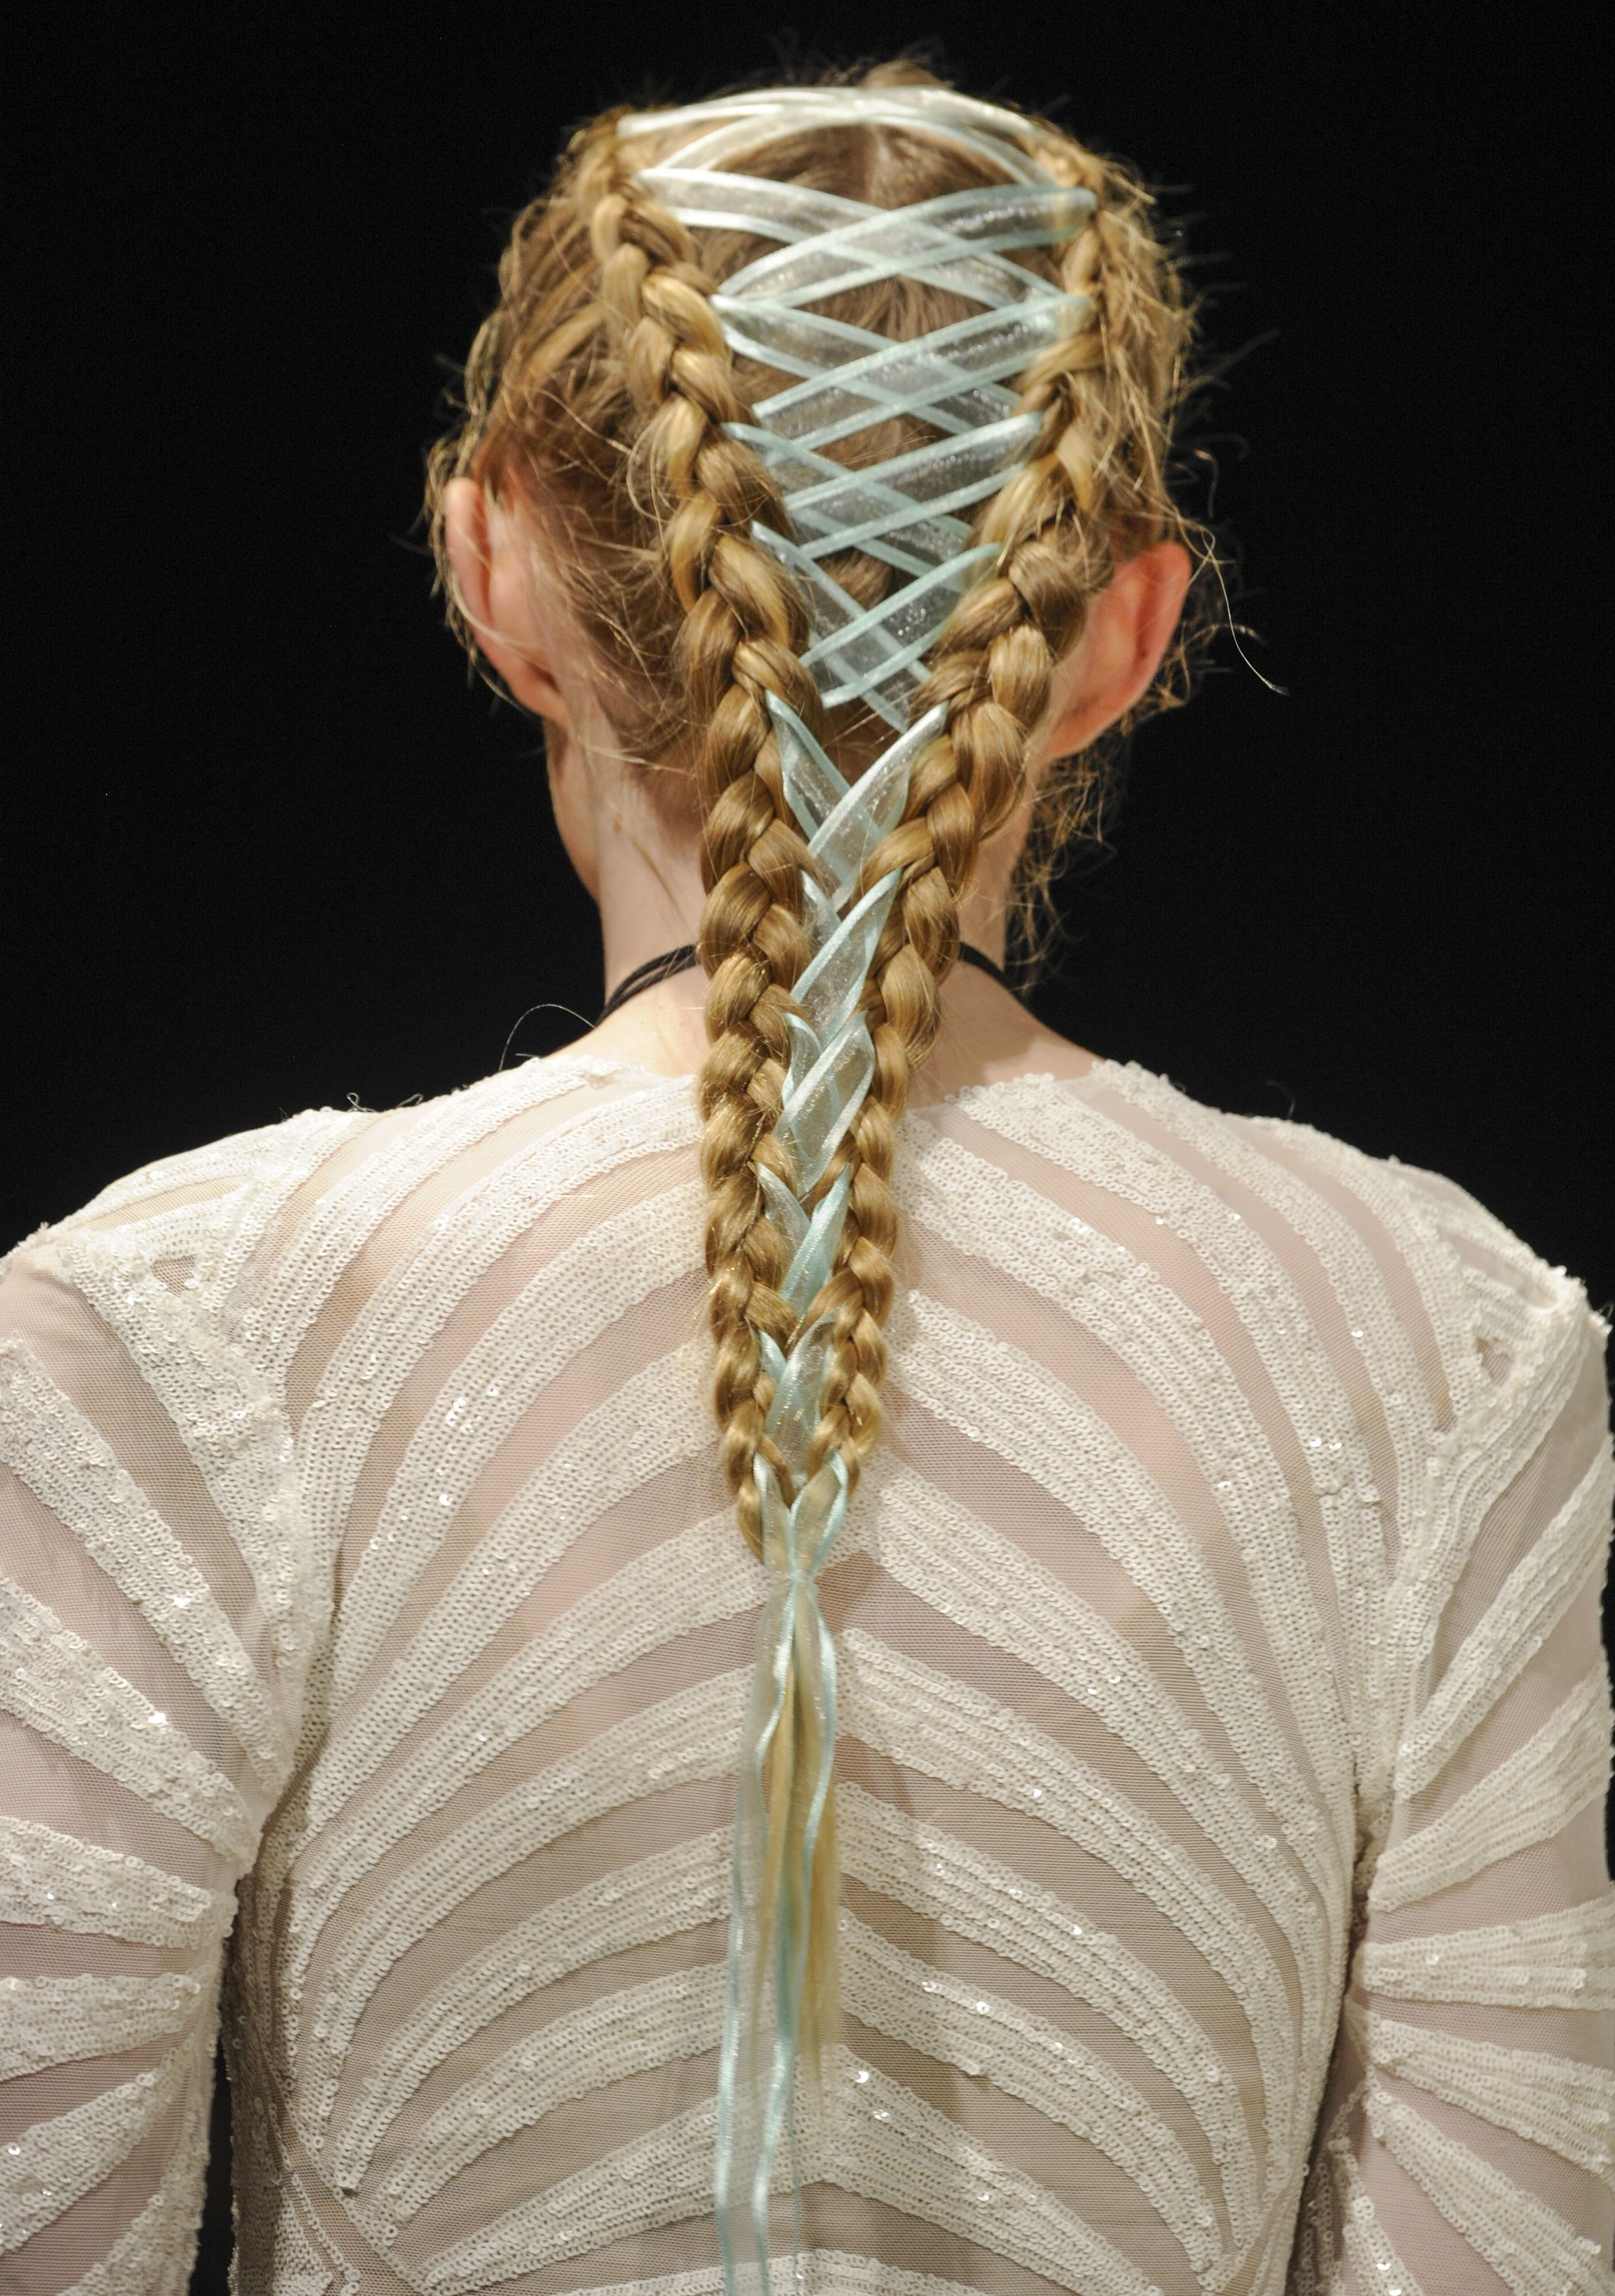 60 Easy Braided Hairstyles – Cool Braid How To's & Ideas Inside Famous Ultra Modern U Shaped Under Braid Hairstyles (View 6 of 20)